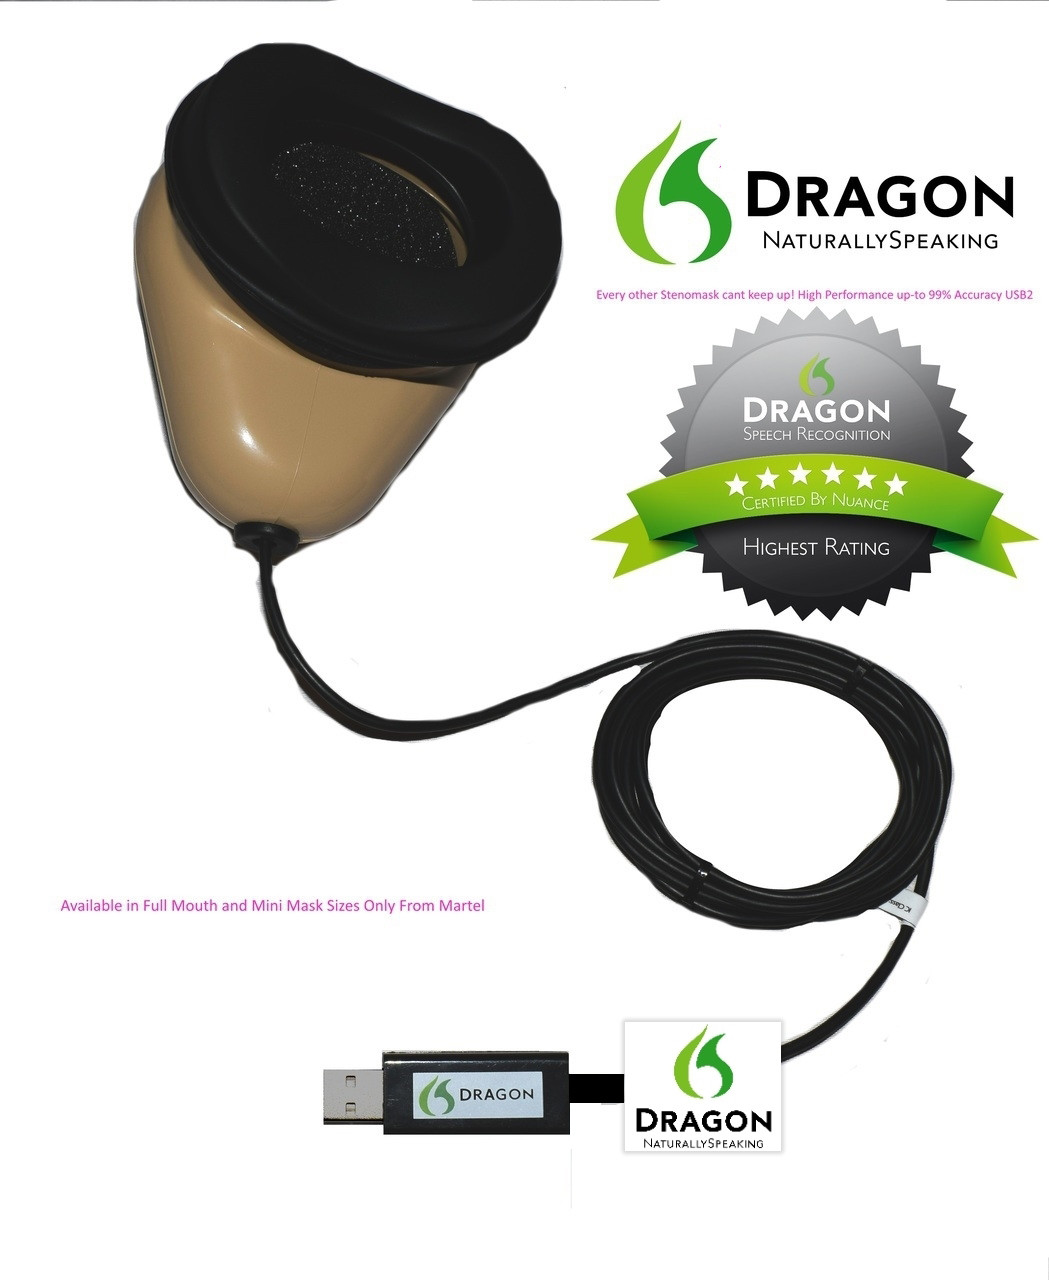 Revolutionary Dragon Stenomask for Voice Recognition